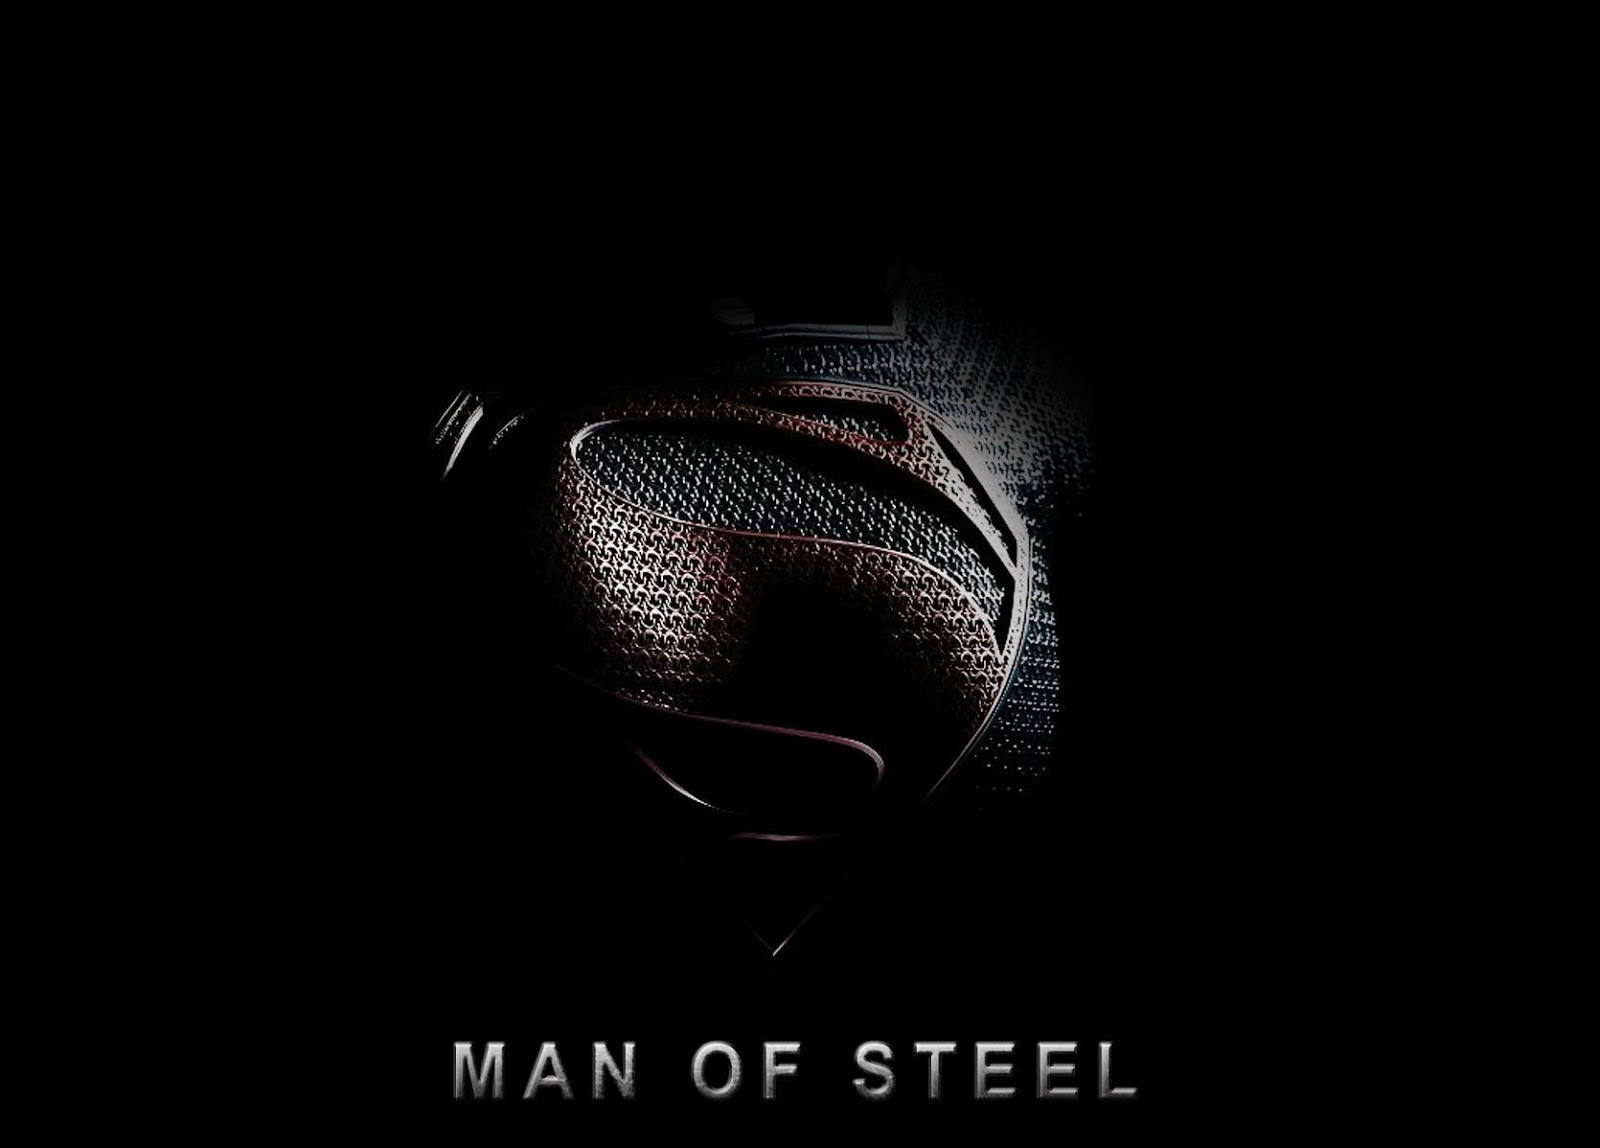 Online Wallpapers Shop Superman Man Of Steel Poster Wallpaper 1600x1148